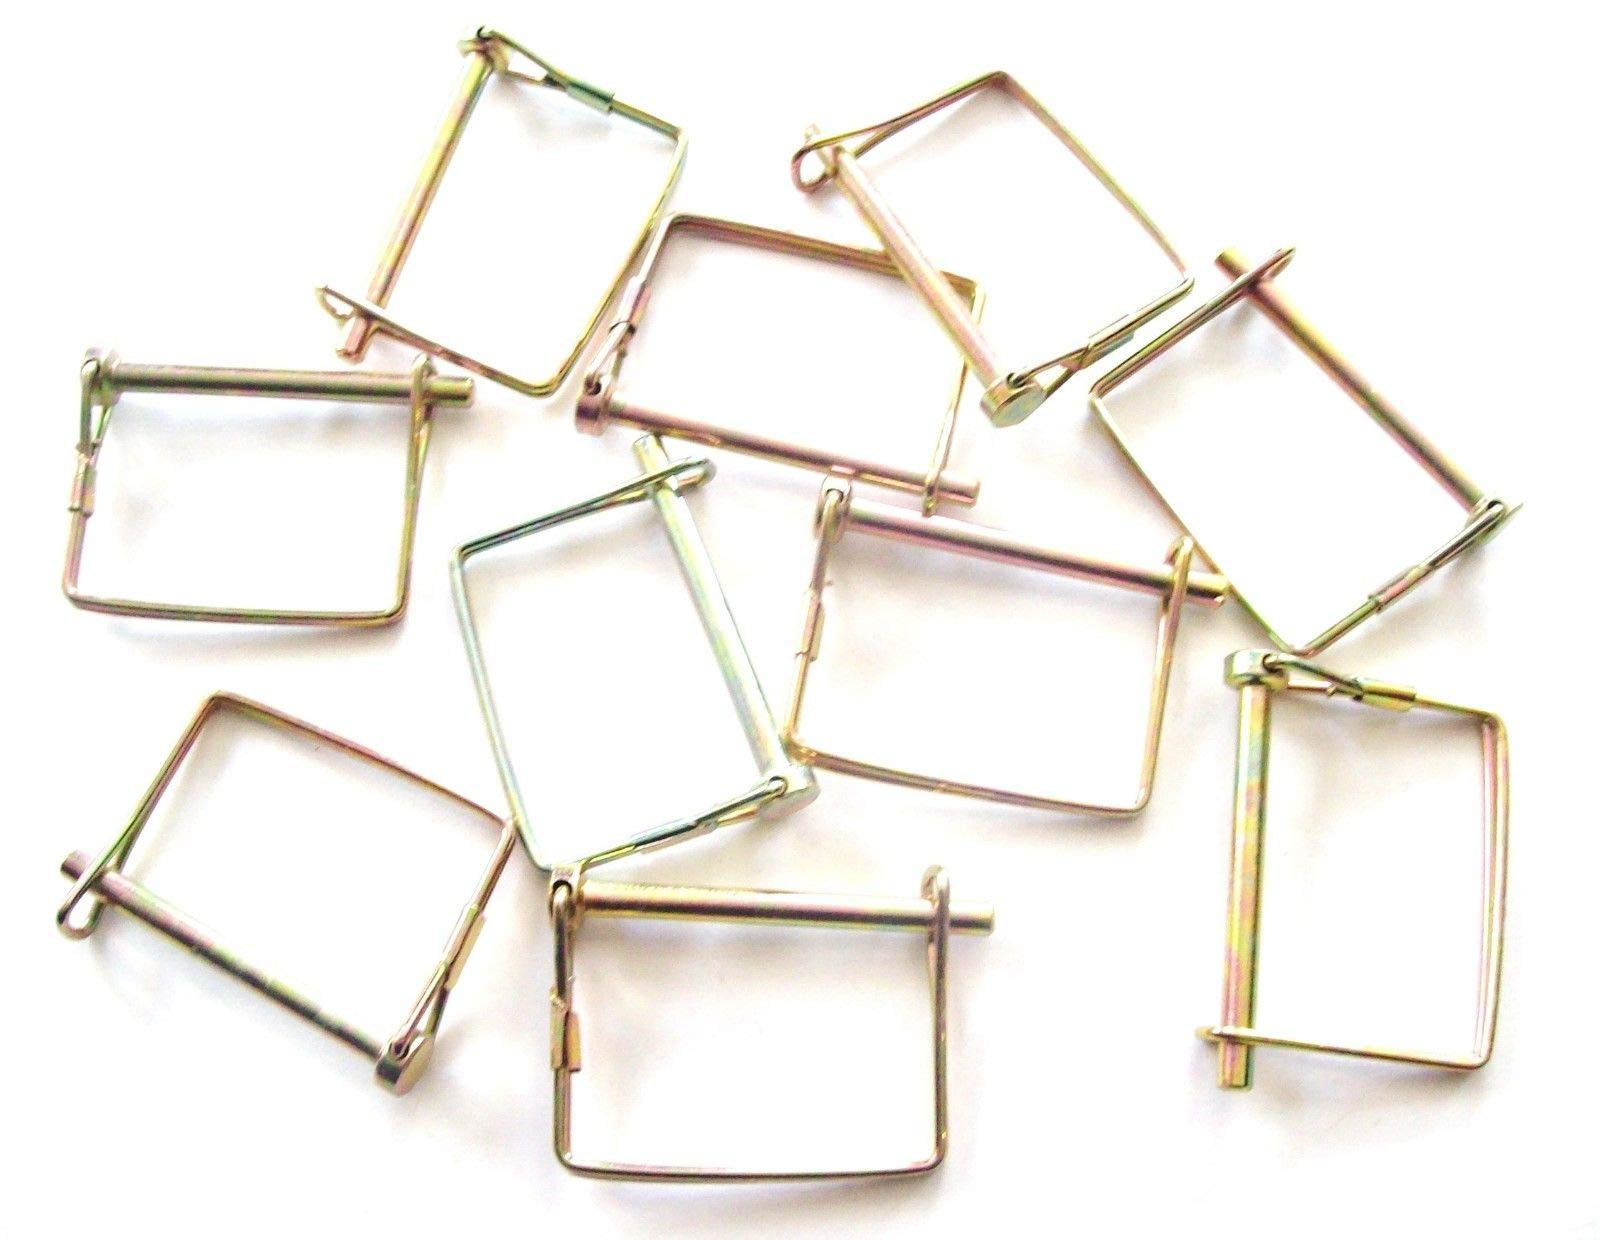 10 3'' SQUARE CAMPER AWNING PTO TRAILER HITCH PINS 1/4'' by Hitch Pins